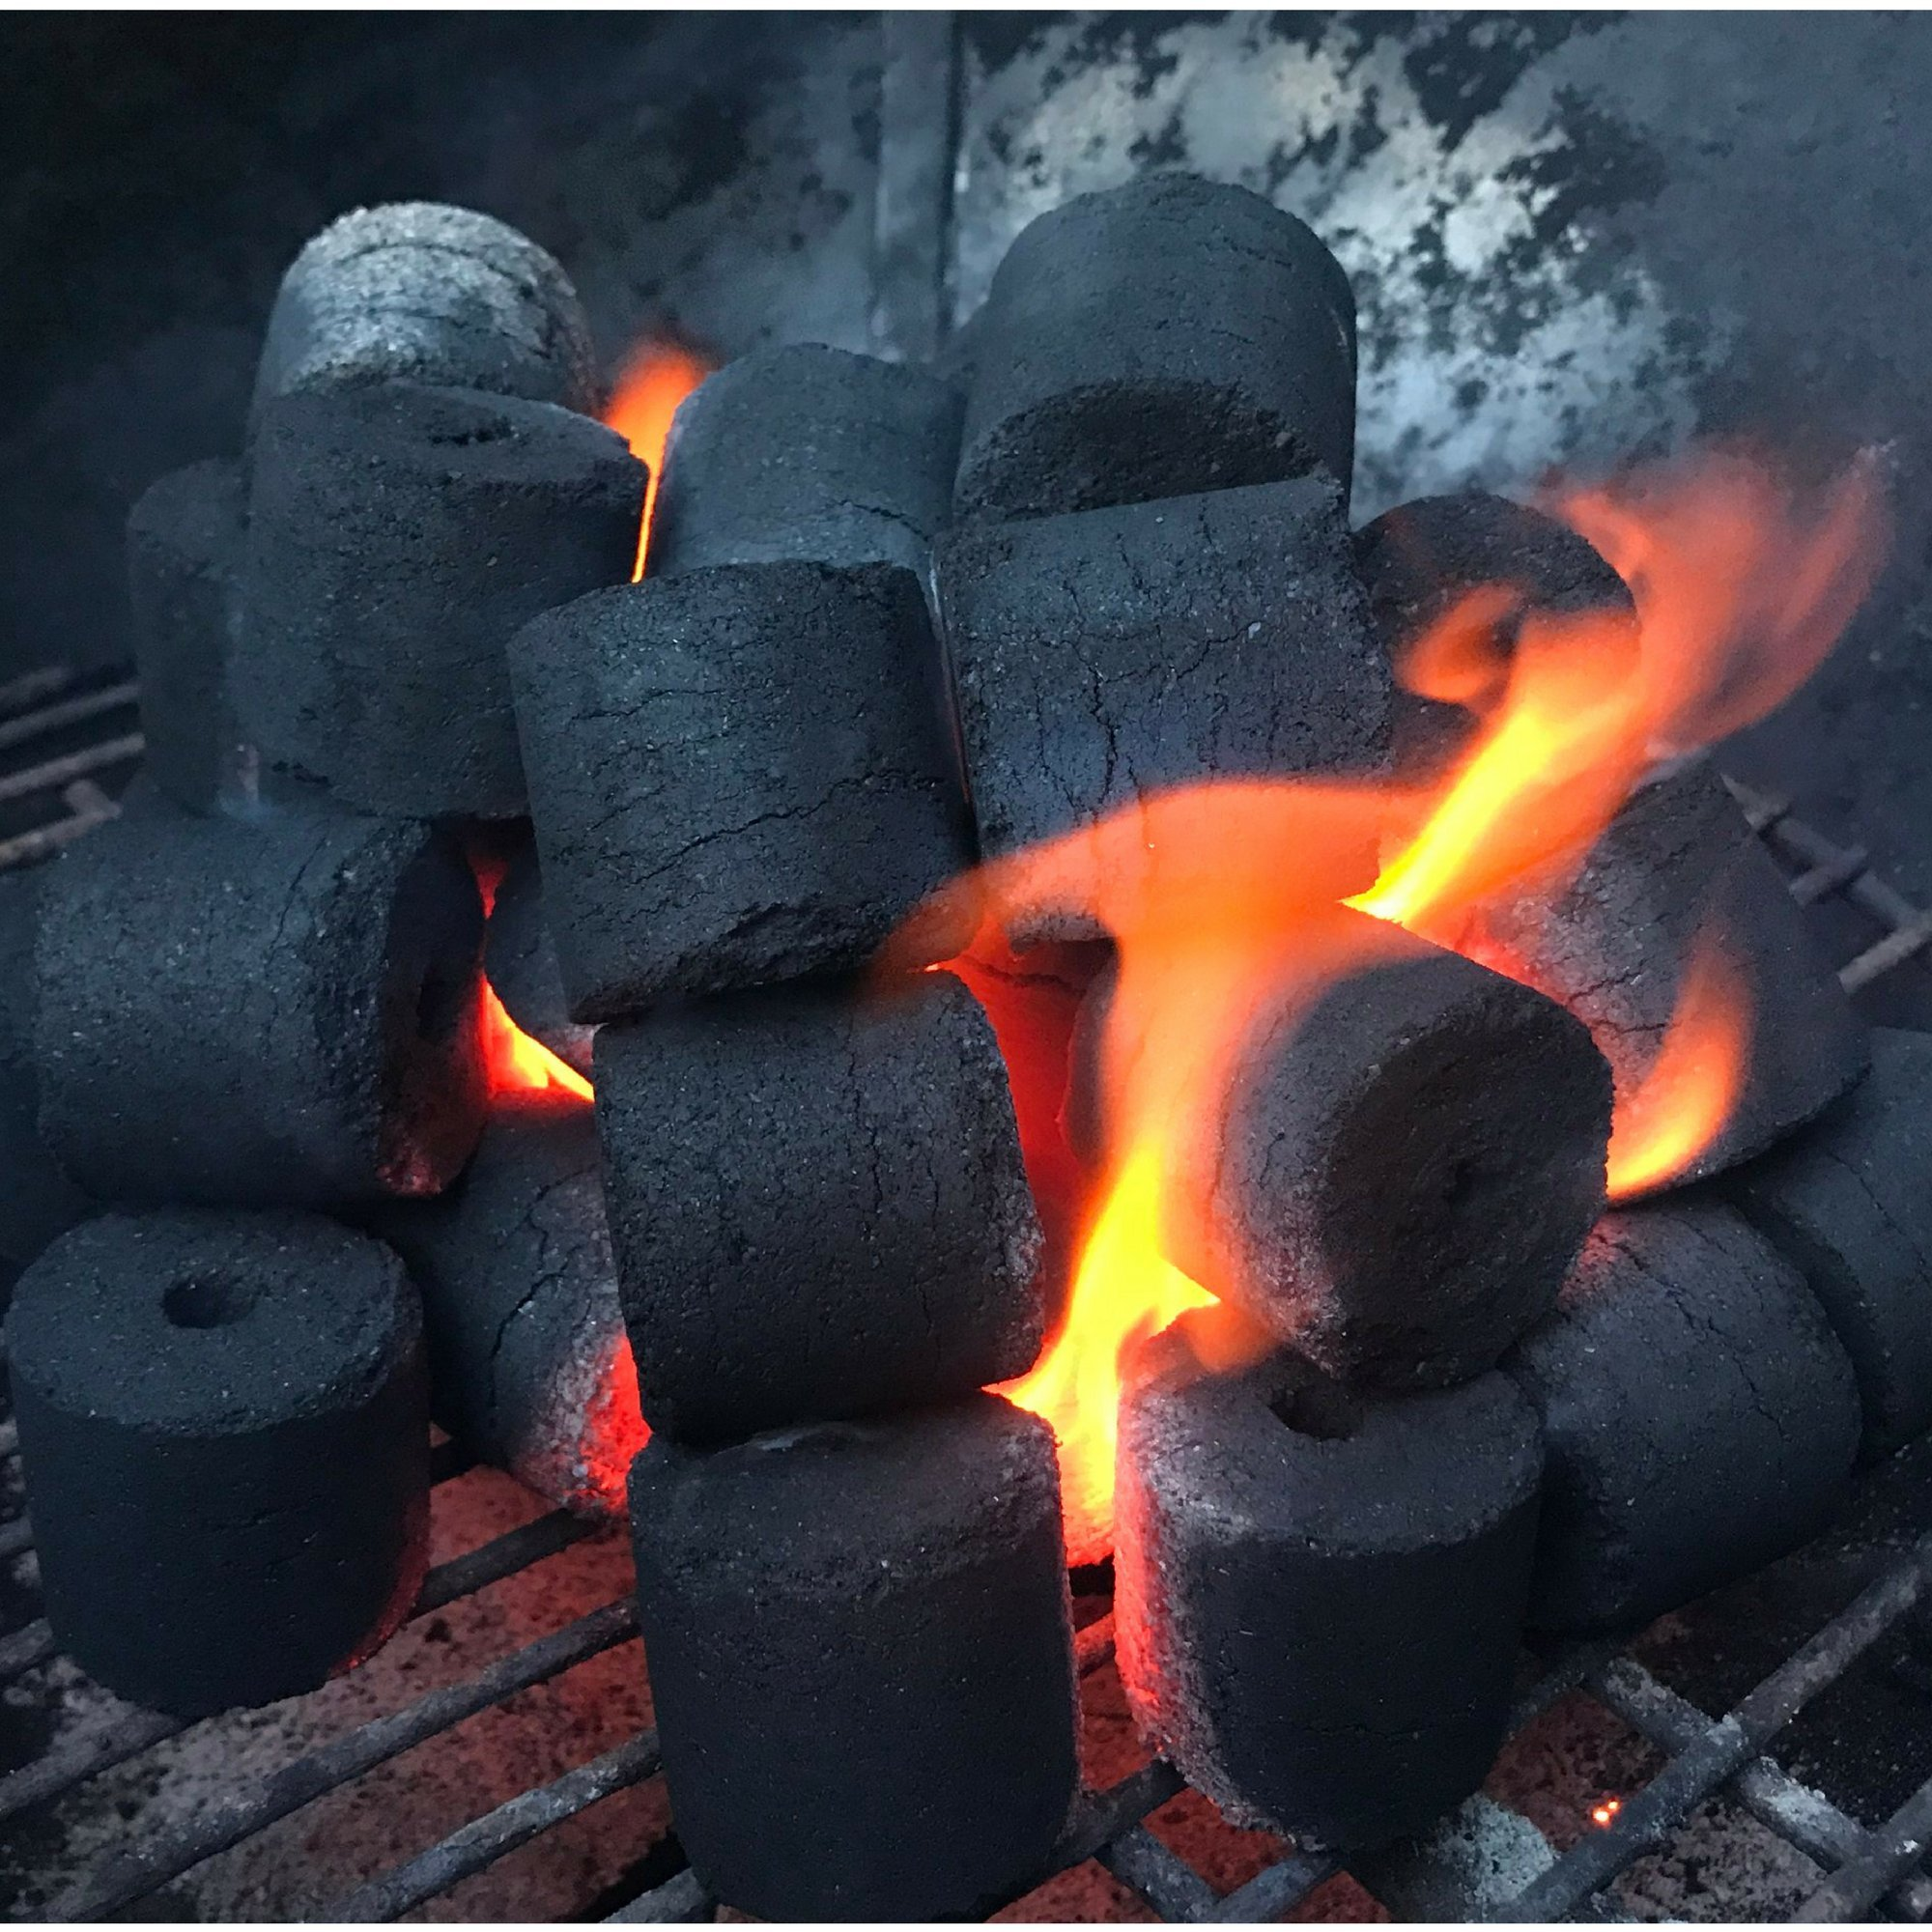 COCO-BBQ Eco-Friendly Barbecue Charcoal Made from Coconut Shells for Low and Slow Grilling by COCO-BBQ (Image #5)